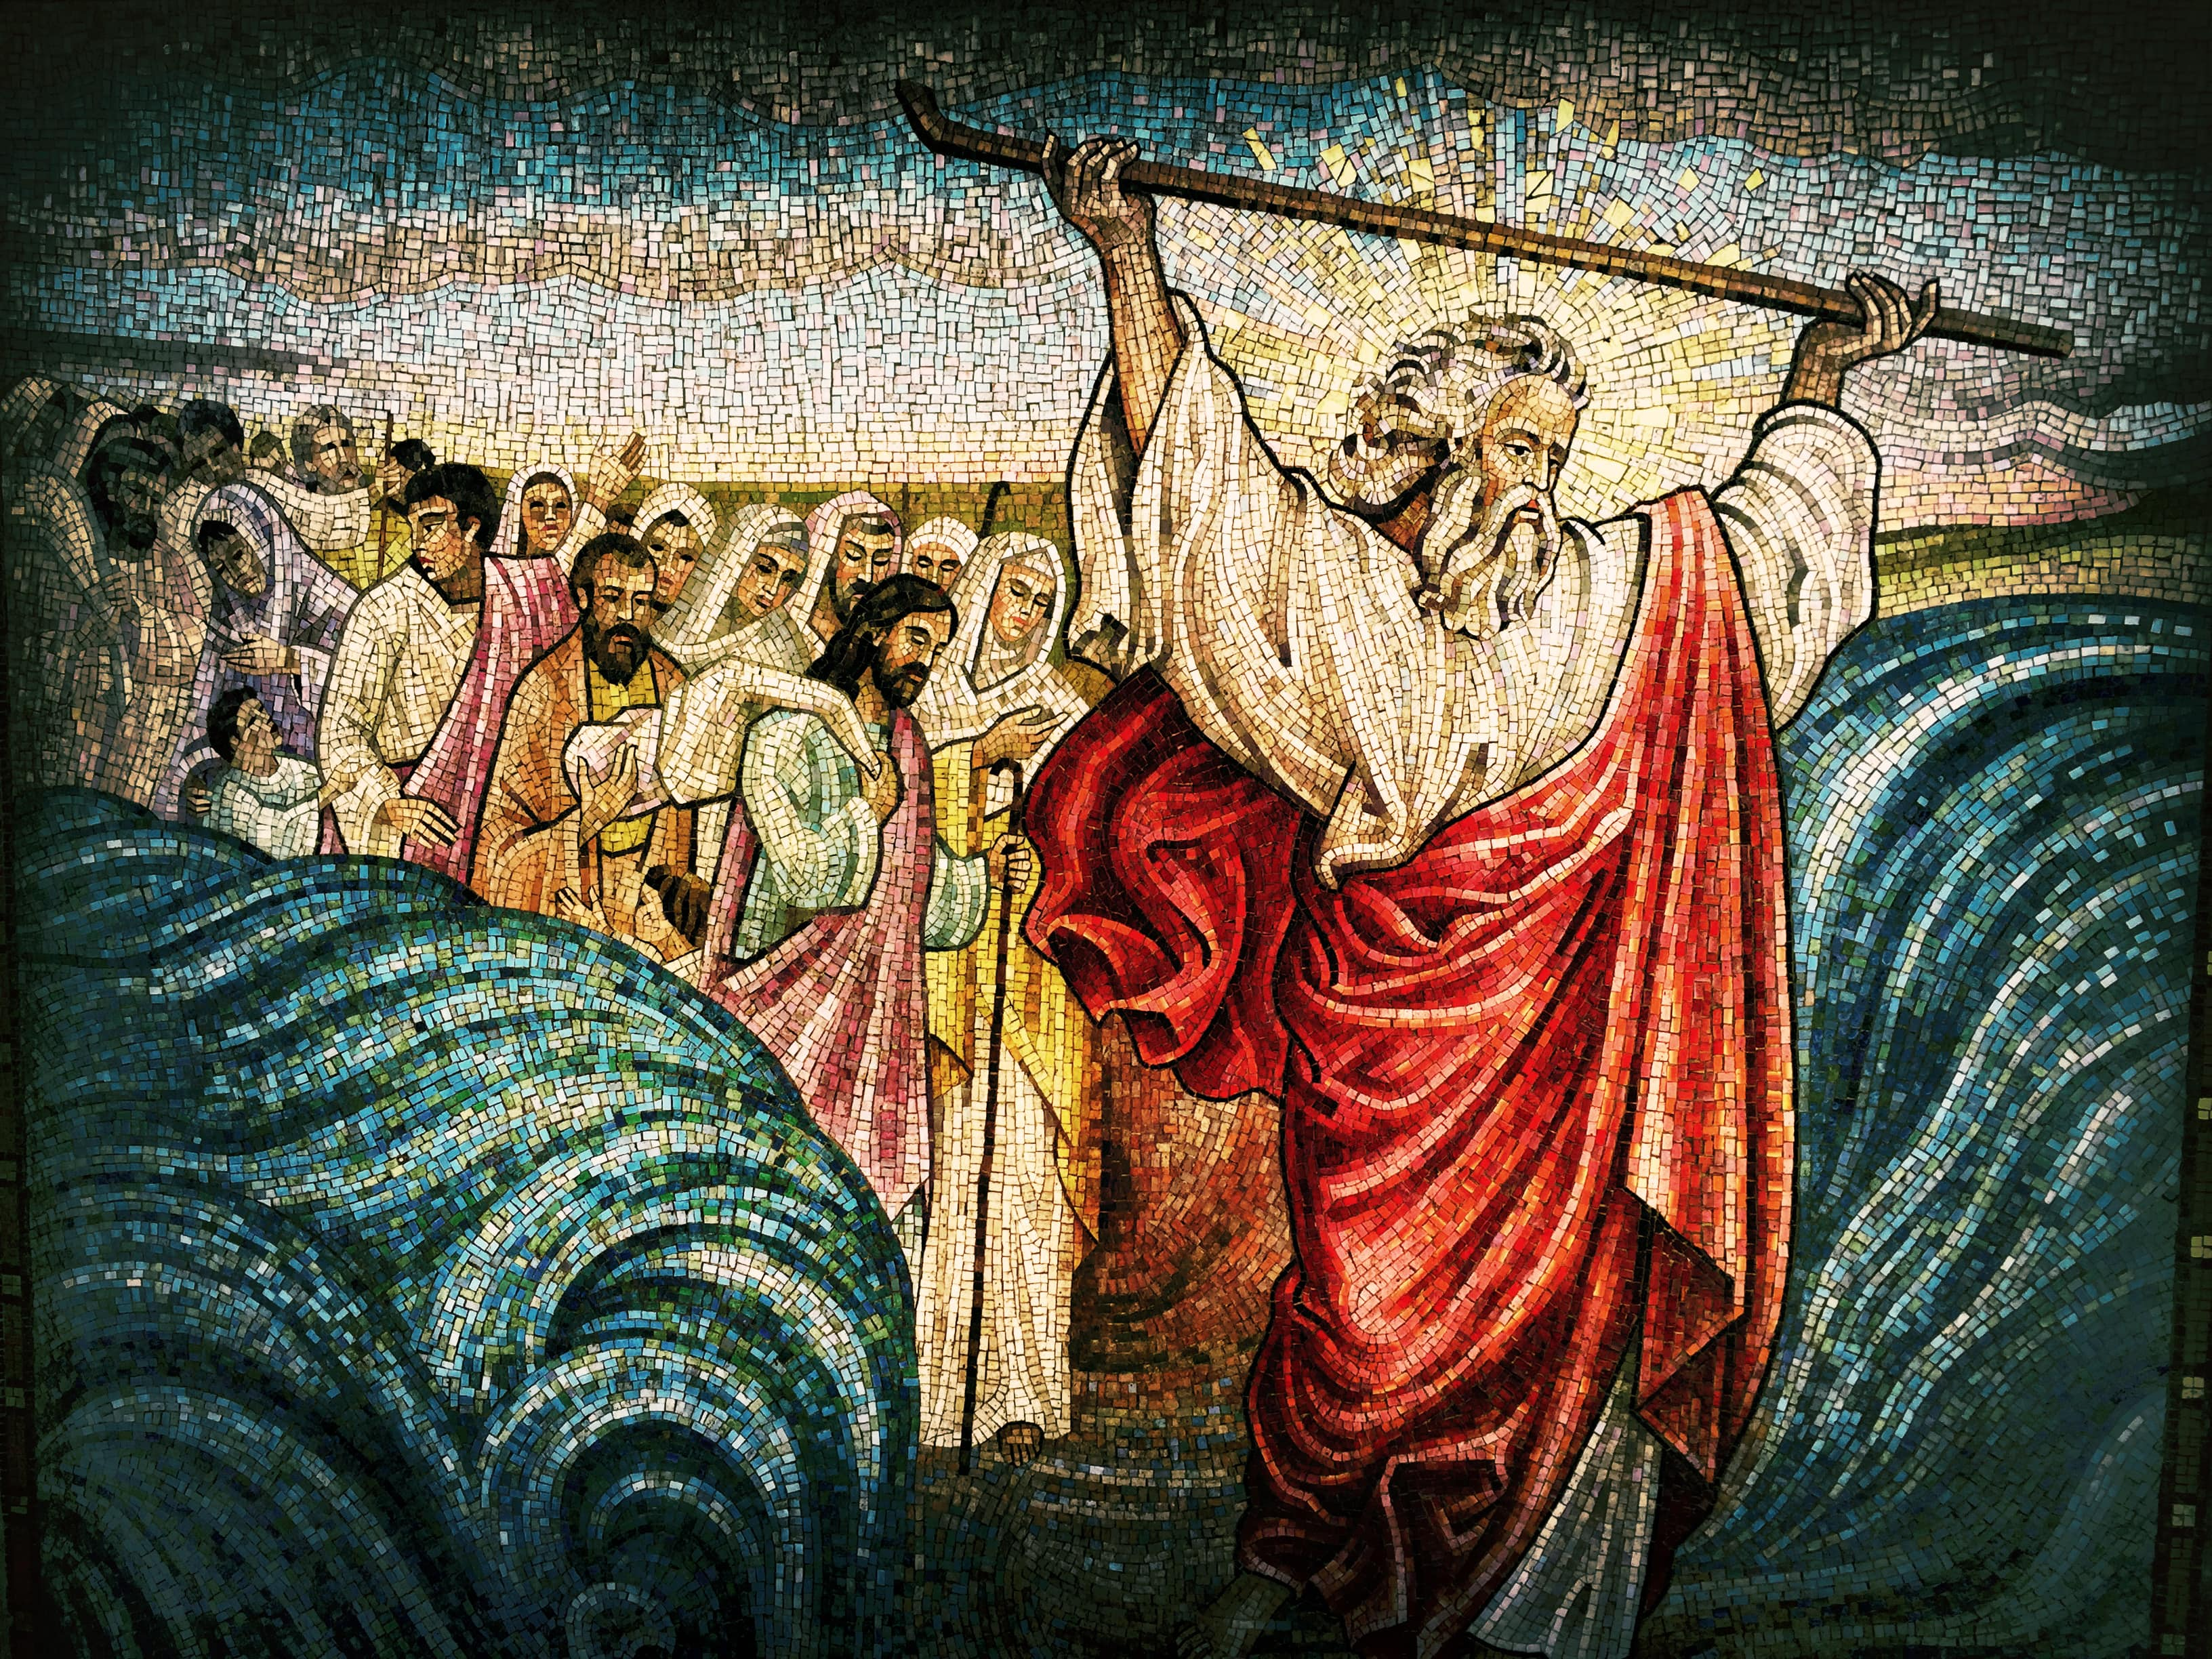 5 Bible Heroes You Might Remember From Sunday School